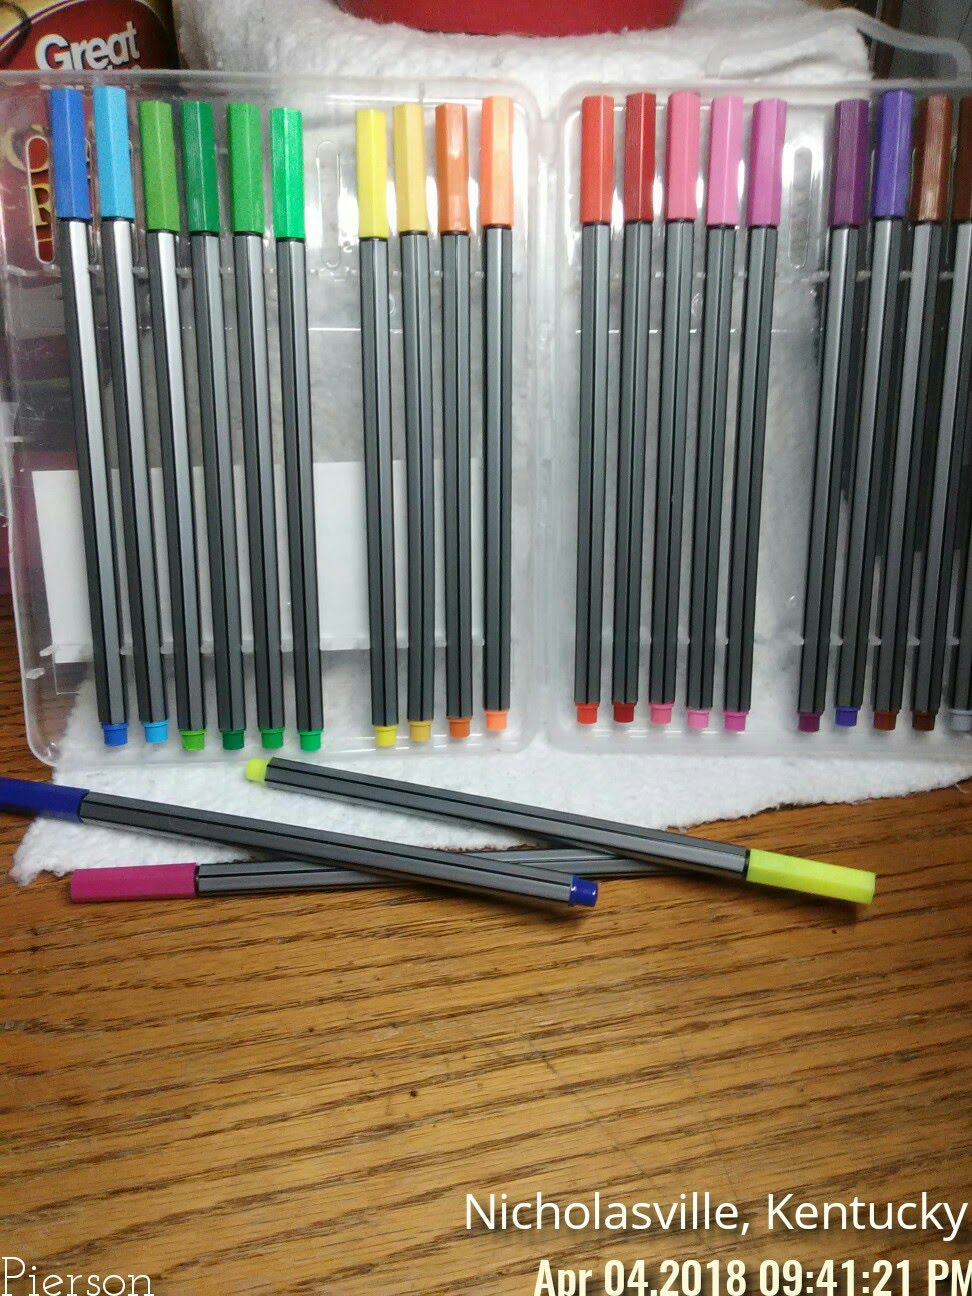 These Pens are High- Quality and versatile!